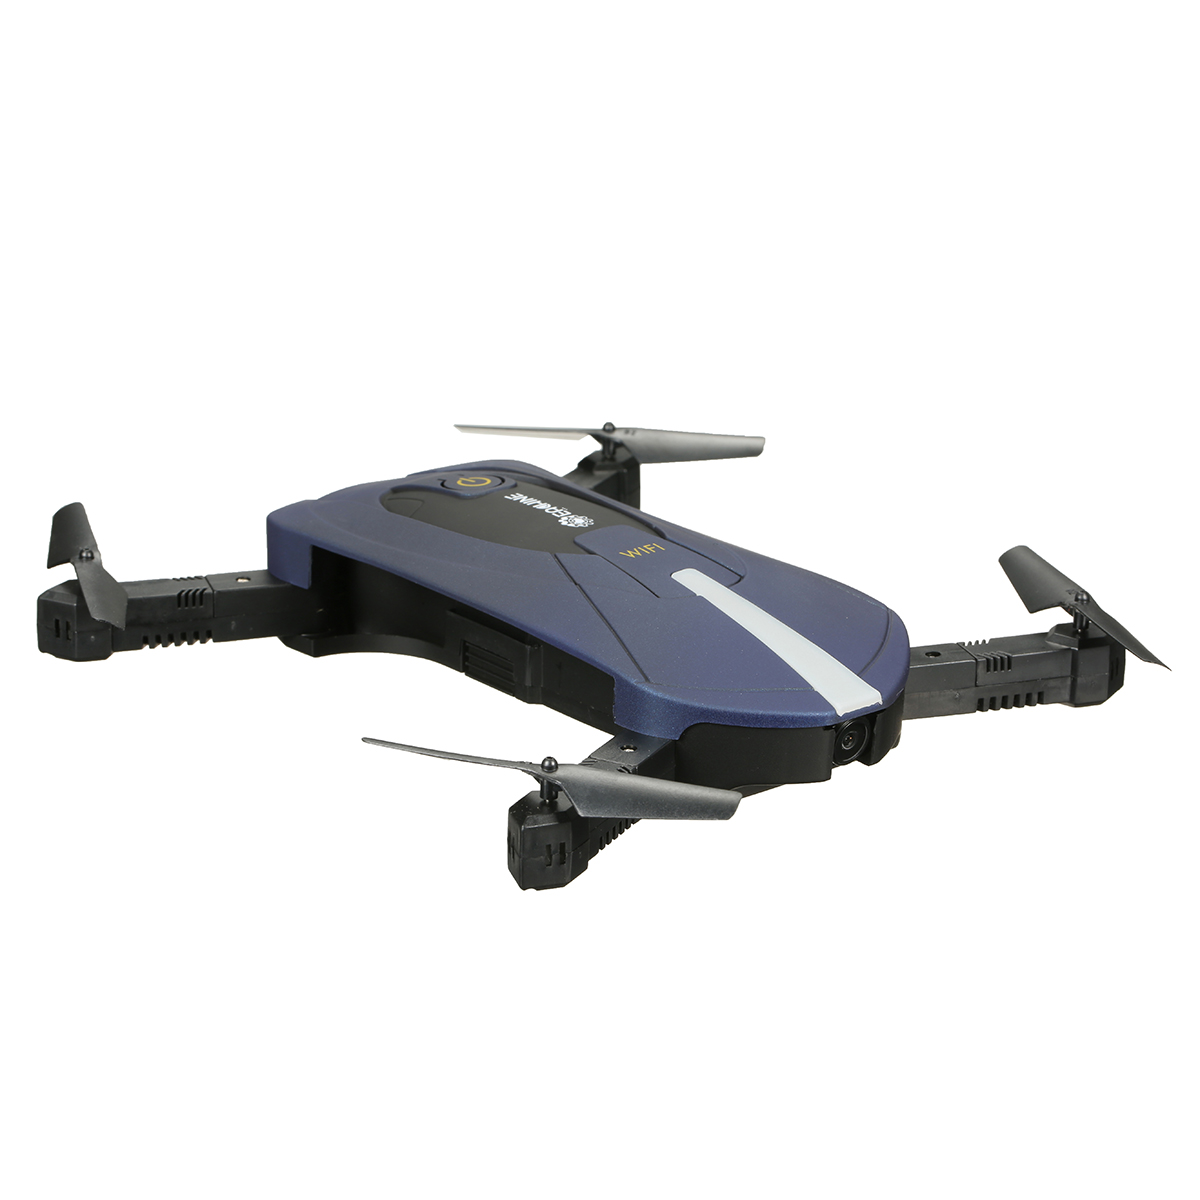 High Quality Eachine E52 WiFi FPV Selfie Drone With High Hold Mode Foldable Arm RC Quadcopter RTF For Children Gift 3